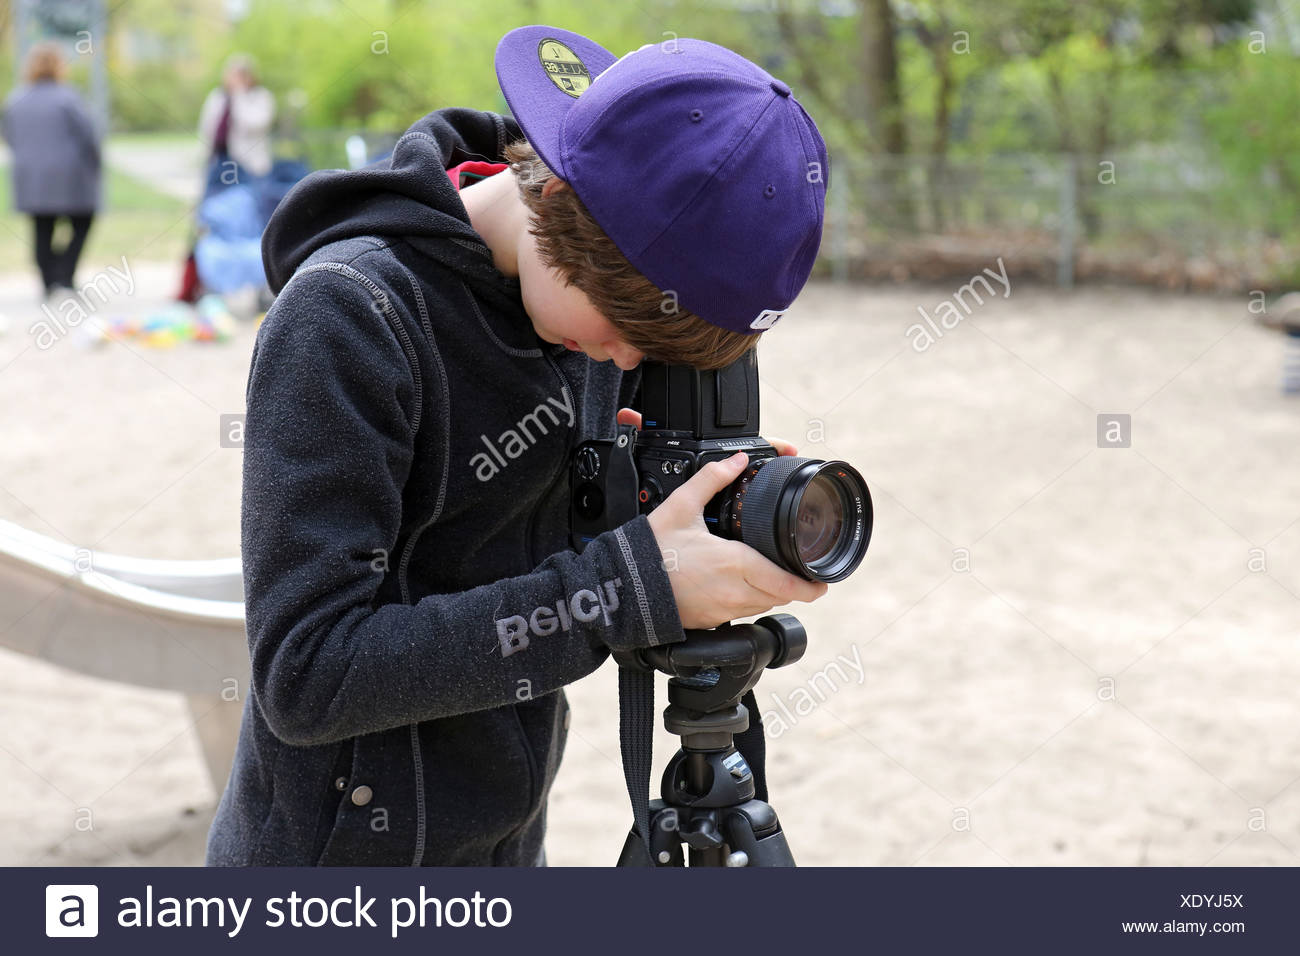 Berlin, Germany, boy photographed with a Hasselblad medium format camera - Stock Image